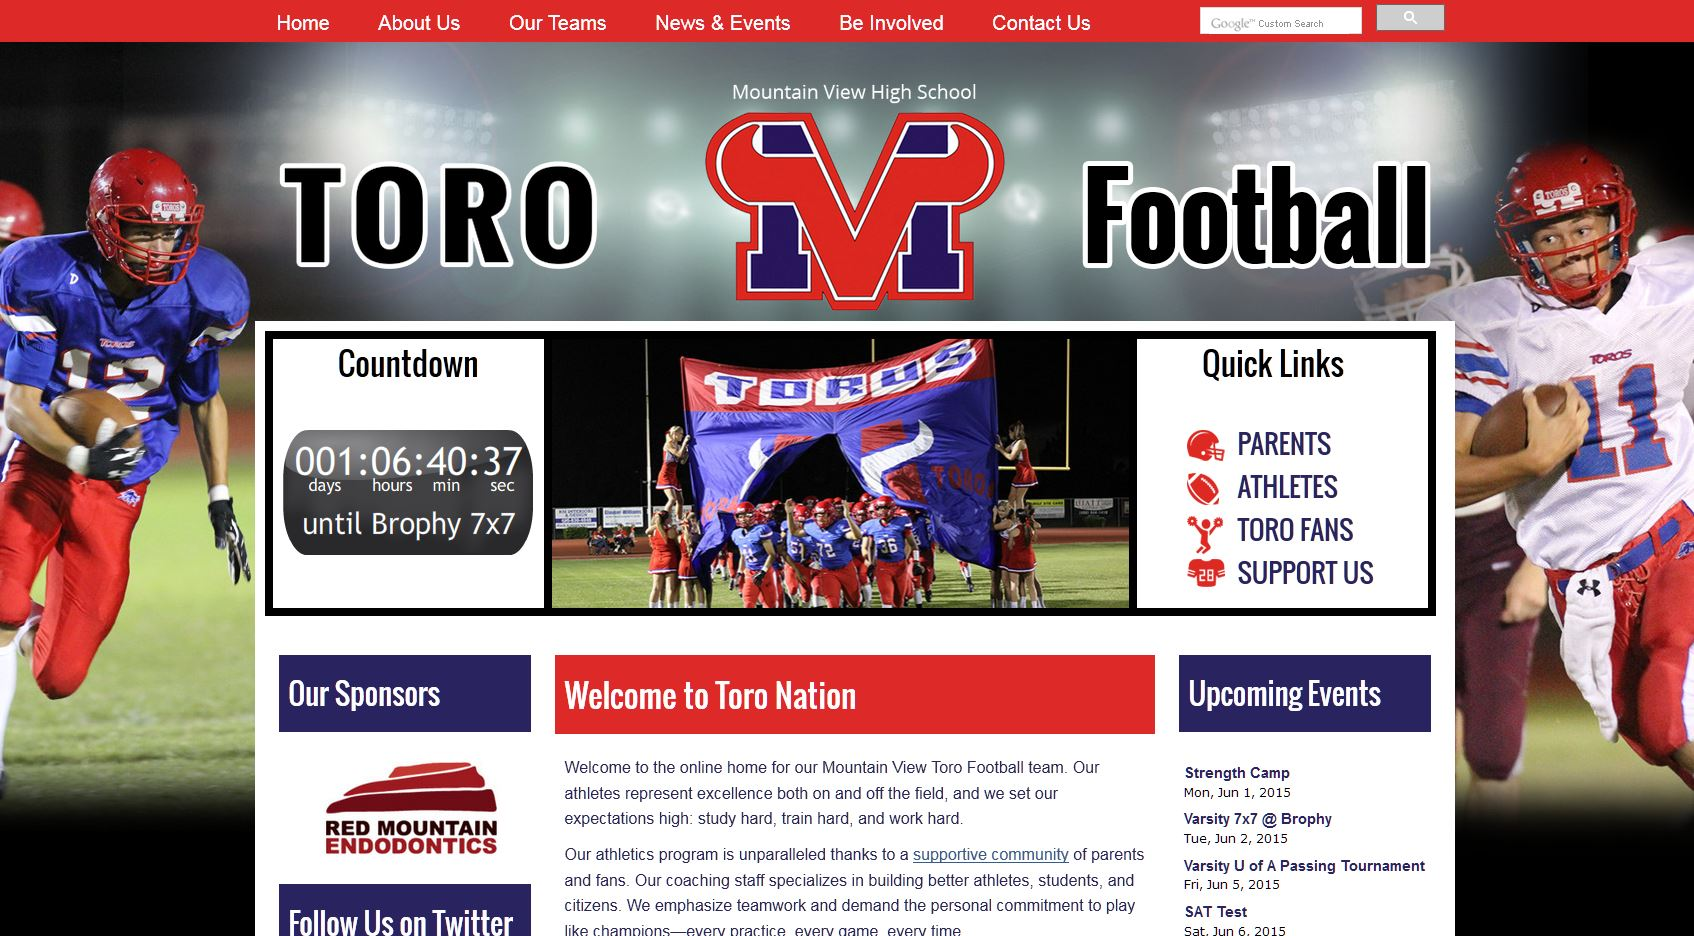 High School Football Websites: Toro Football